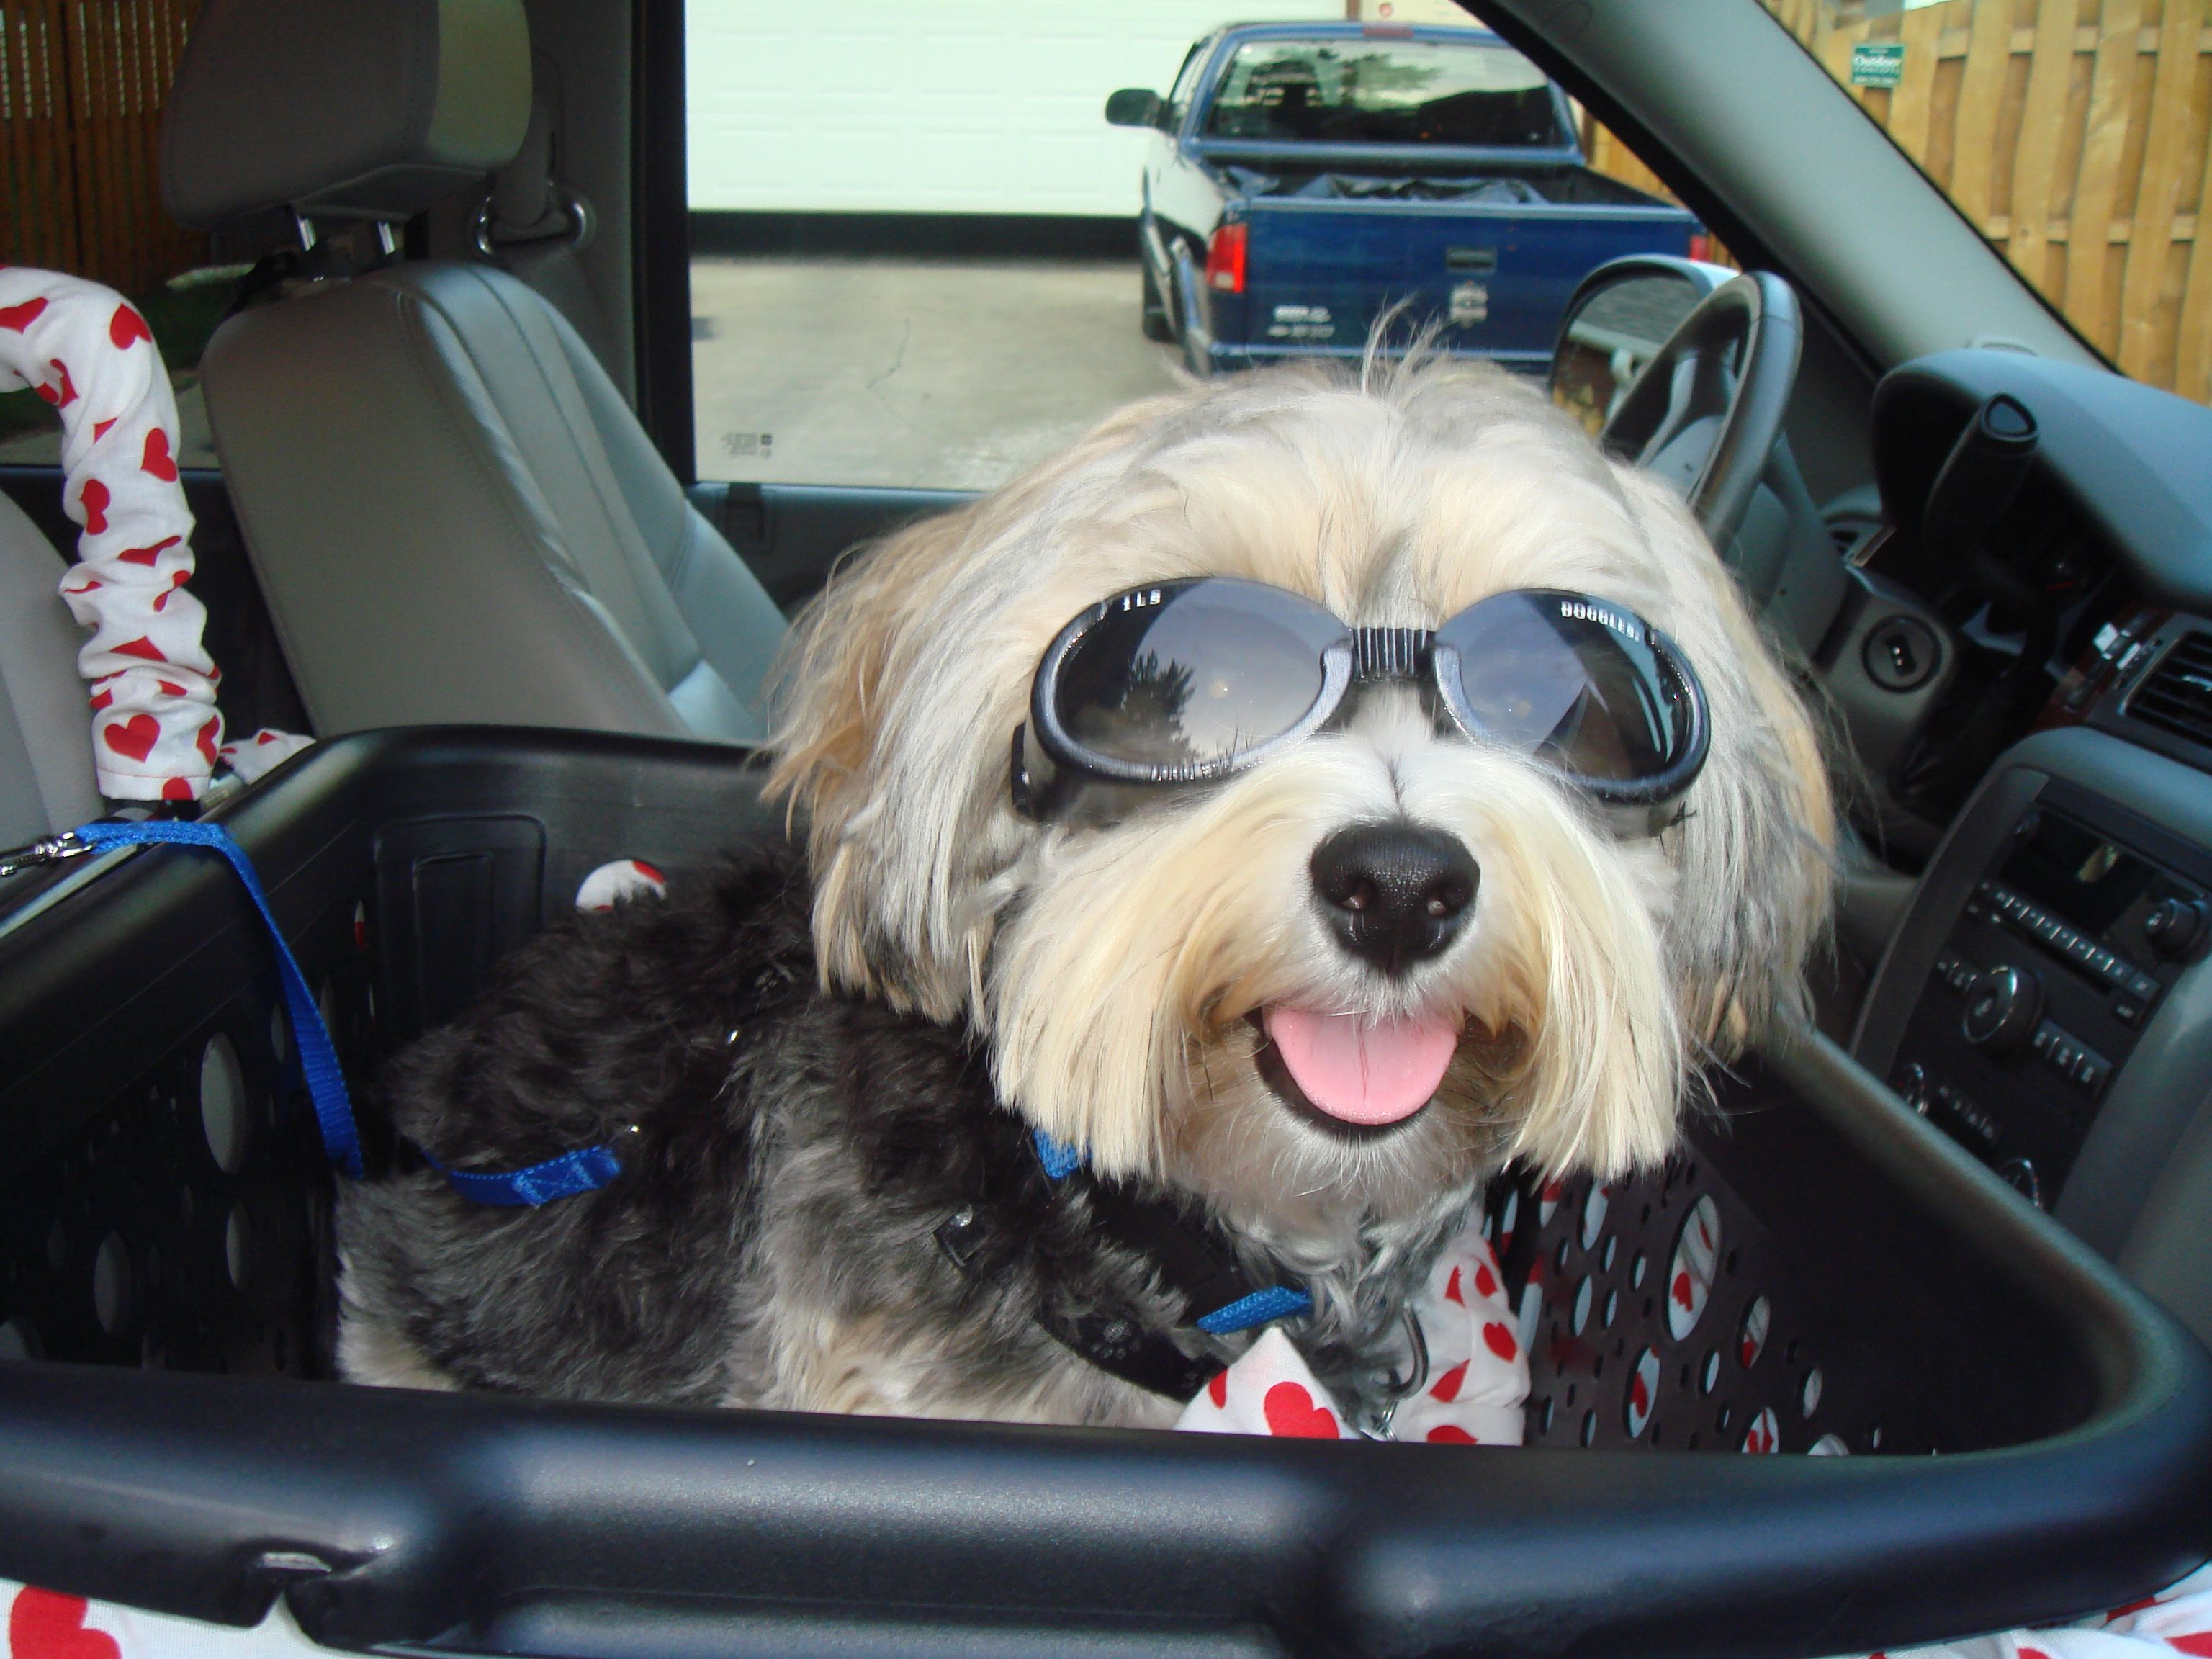 This is Colby a very cool dog and a satisfied customer